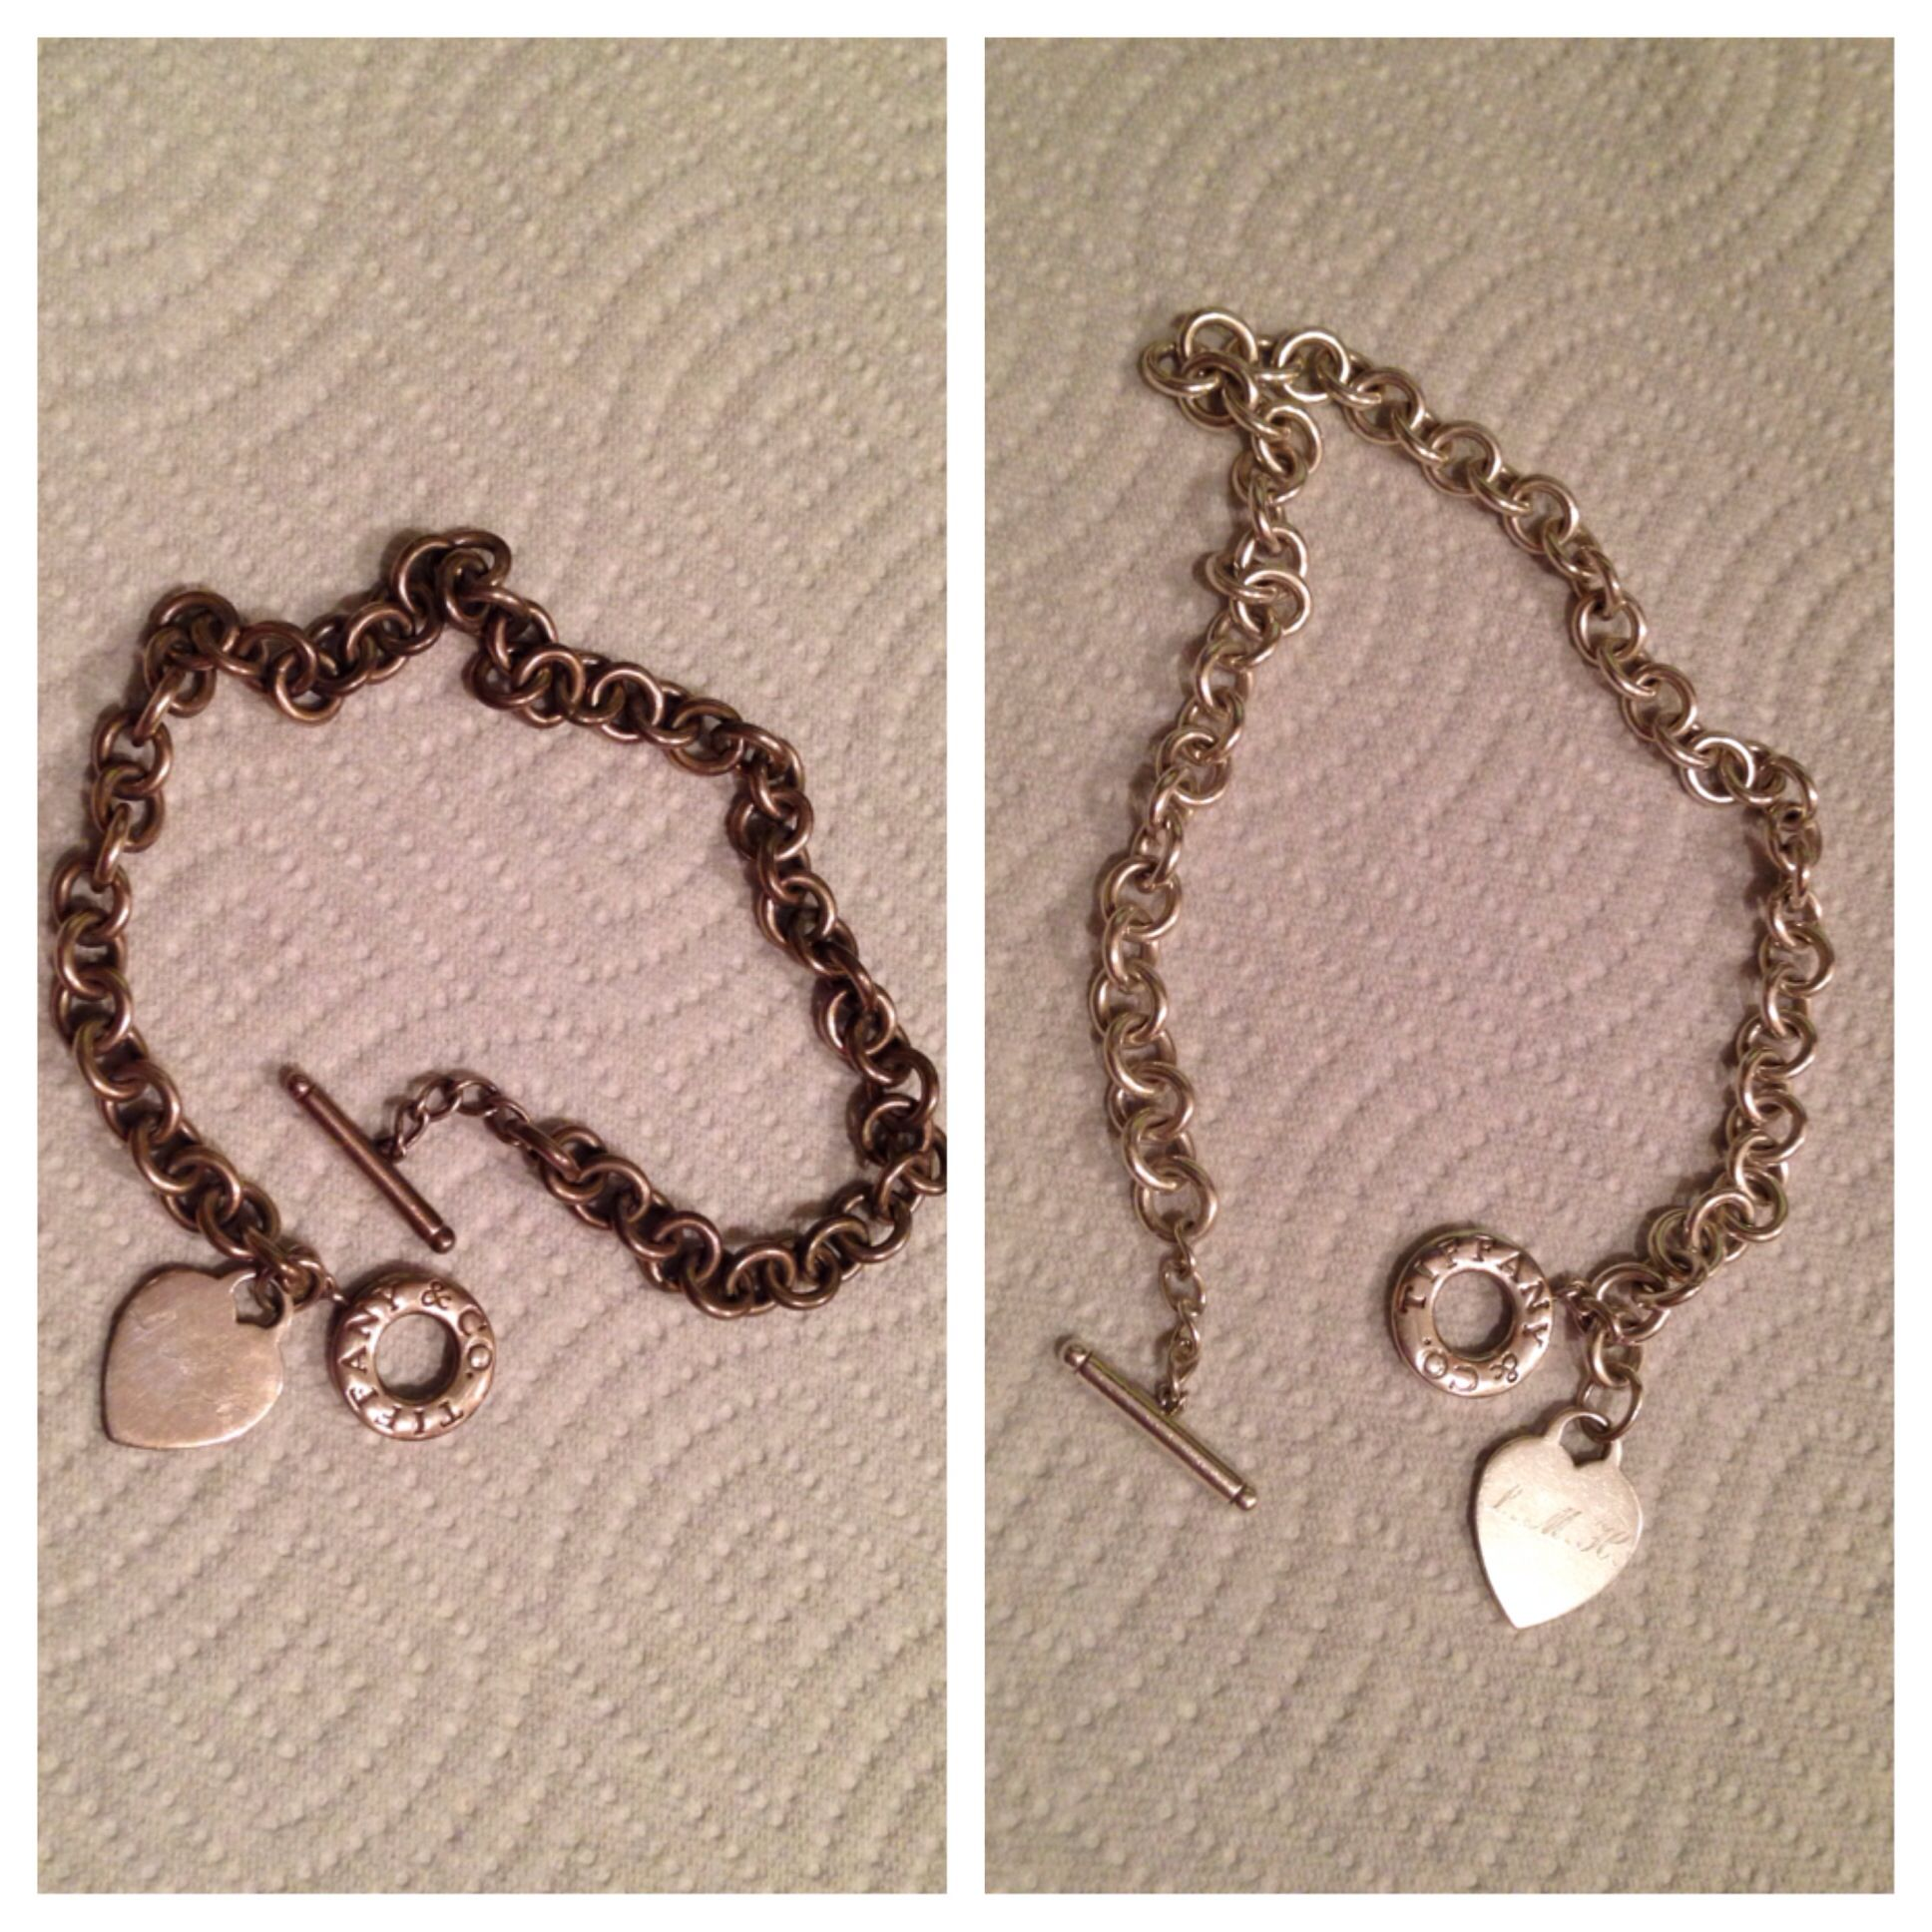 The Easy Home Remedy To Fix Tarnished Silver Worked Perfectly To Bring The Shine Back To My Tiffany Cleaning Jewelry Tiffany Necklace Cleaning Silver Jewelry